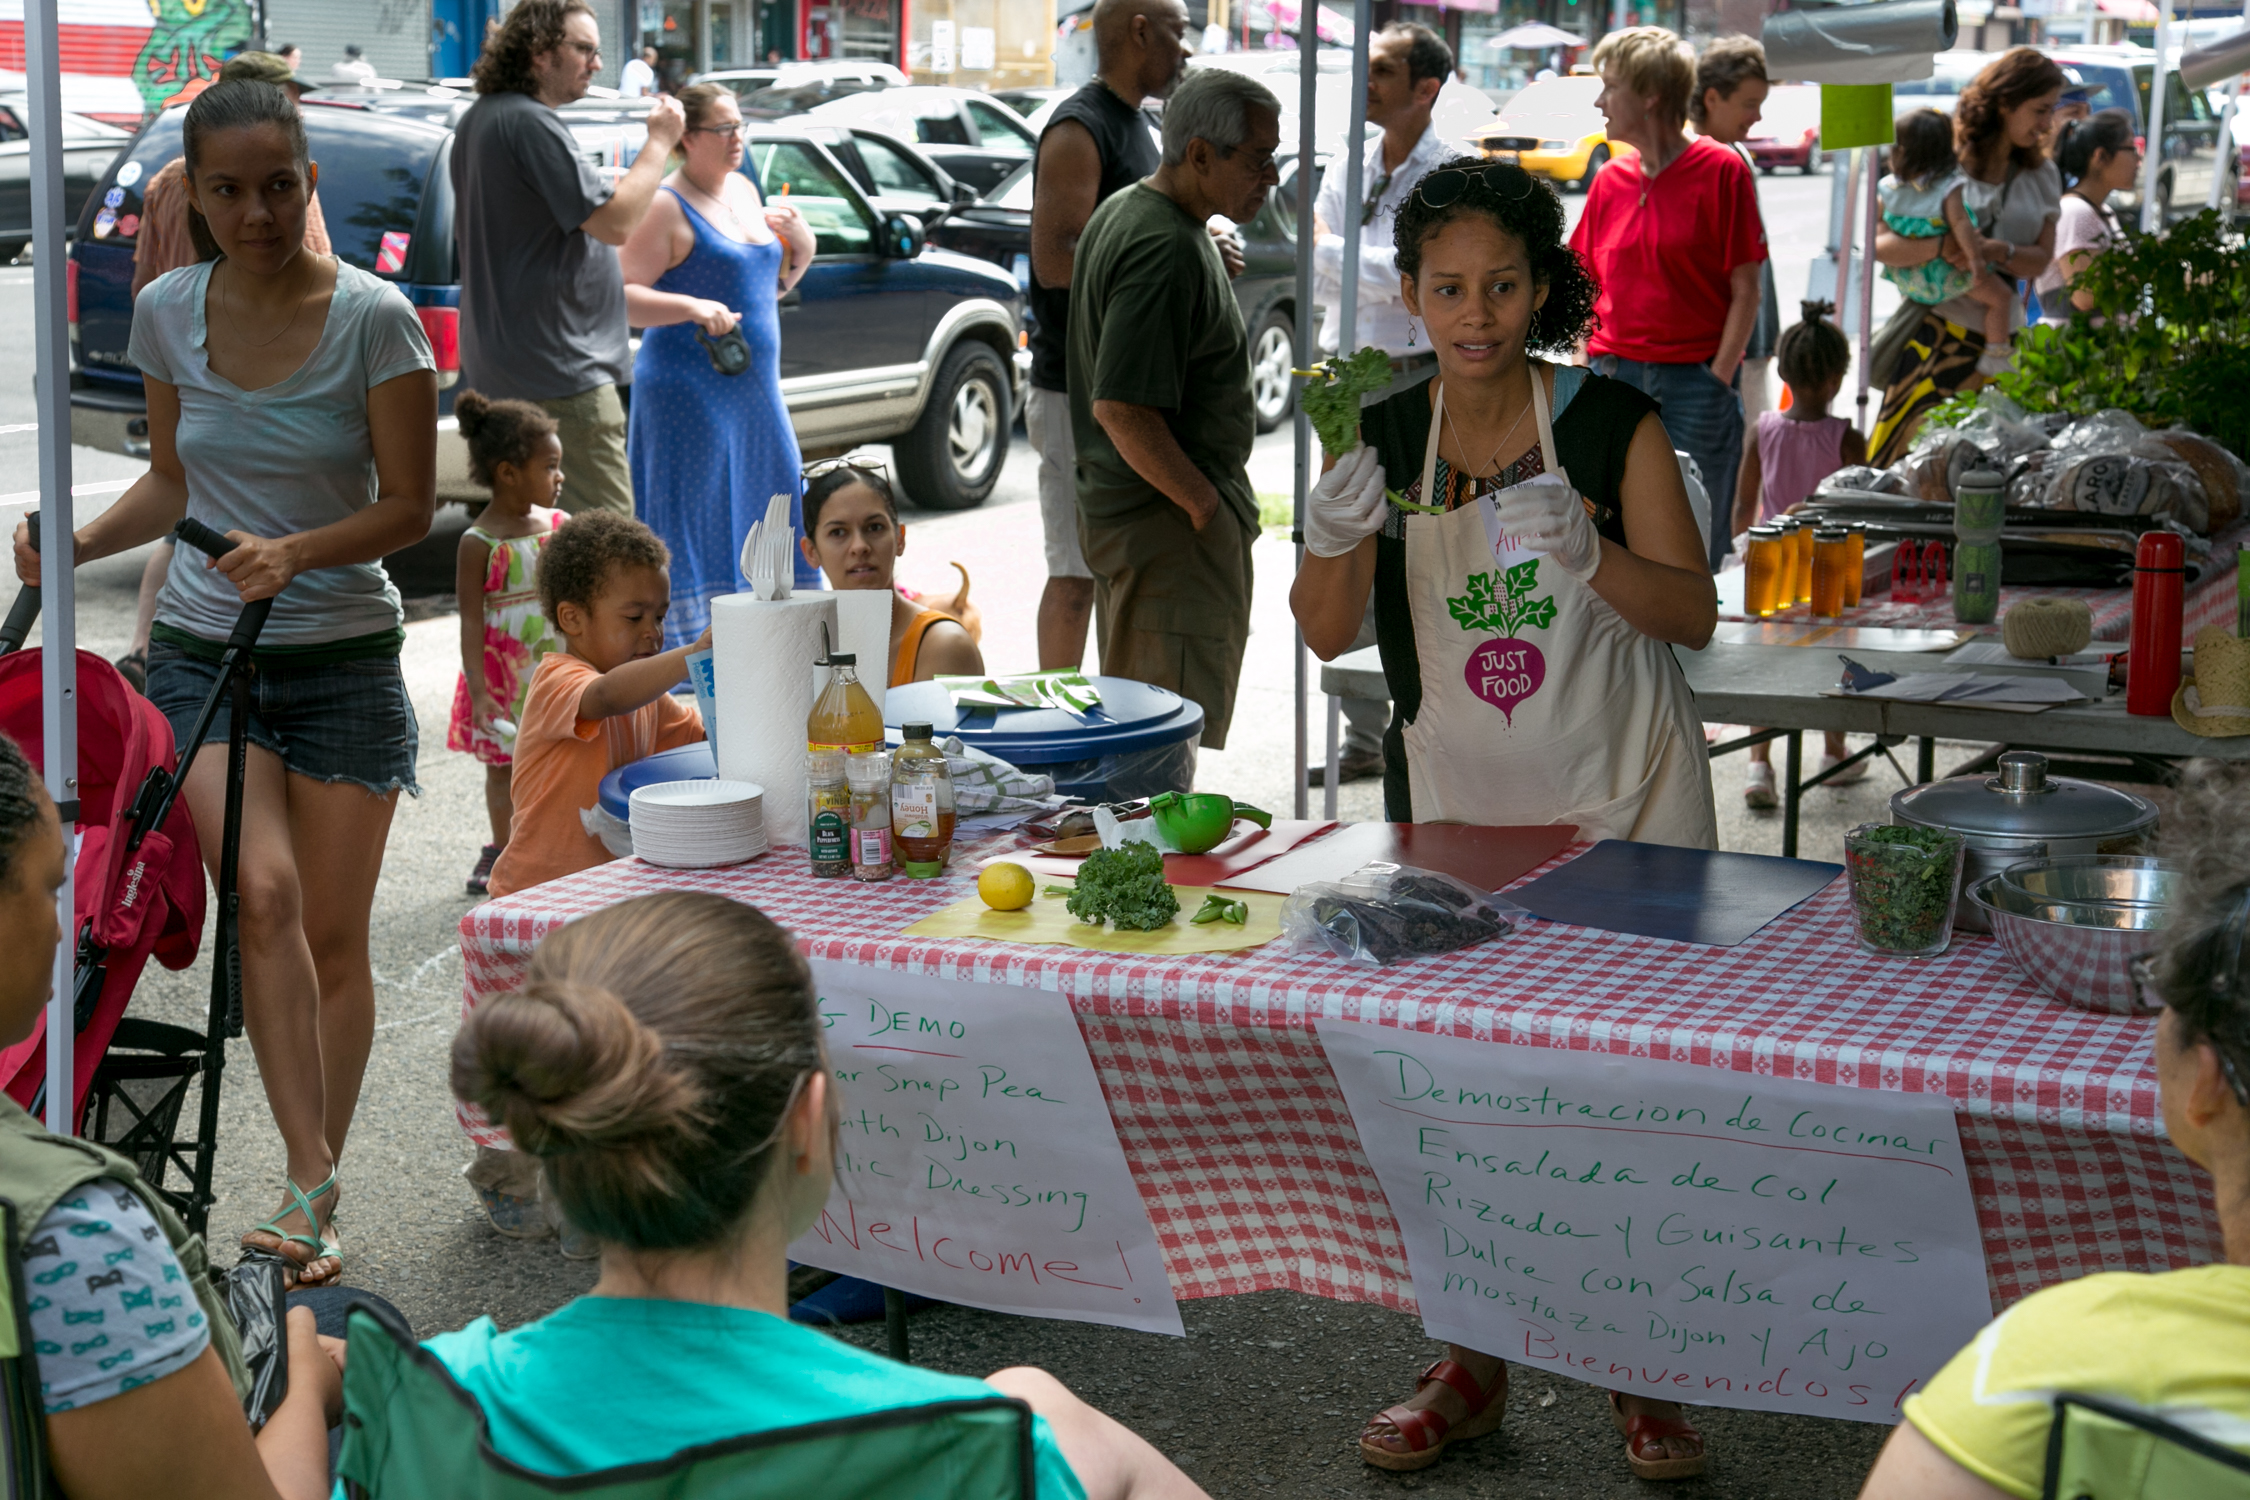 Farmers Market Kids' Classes: Earn Health Bucks, Fun Activities, and More